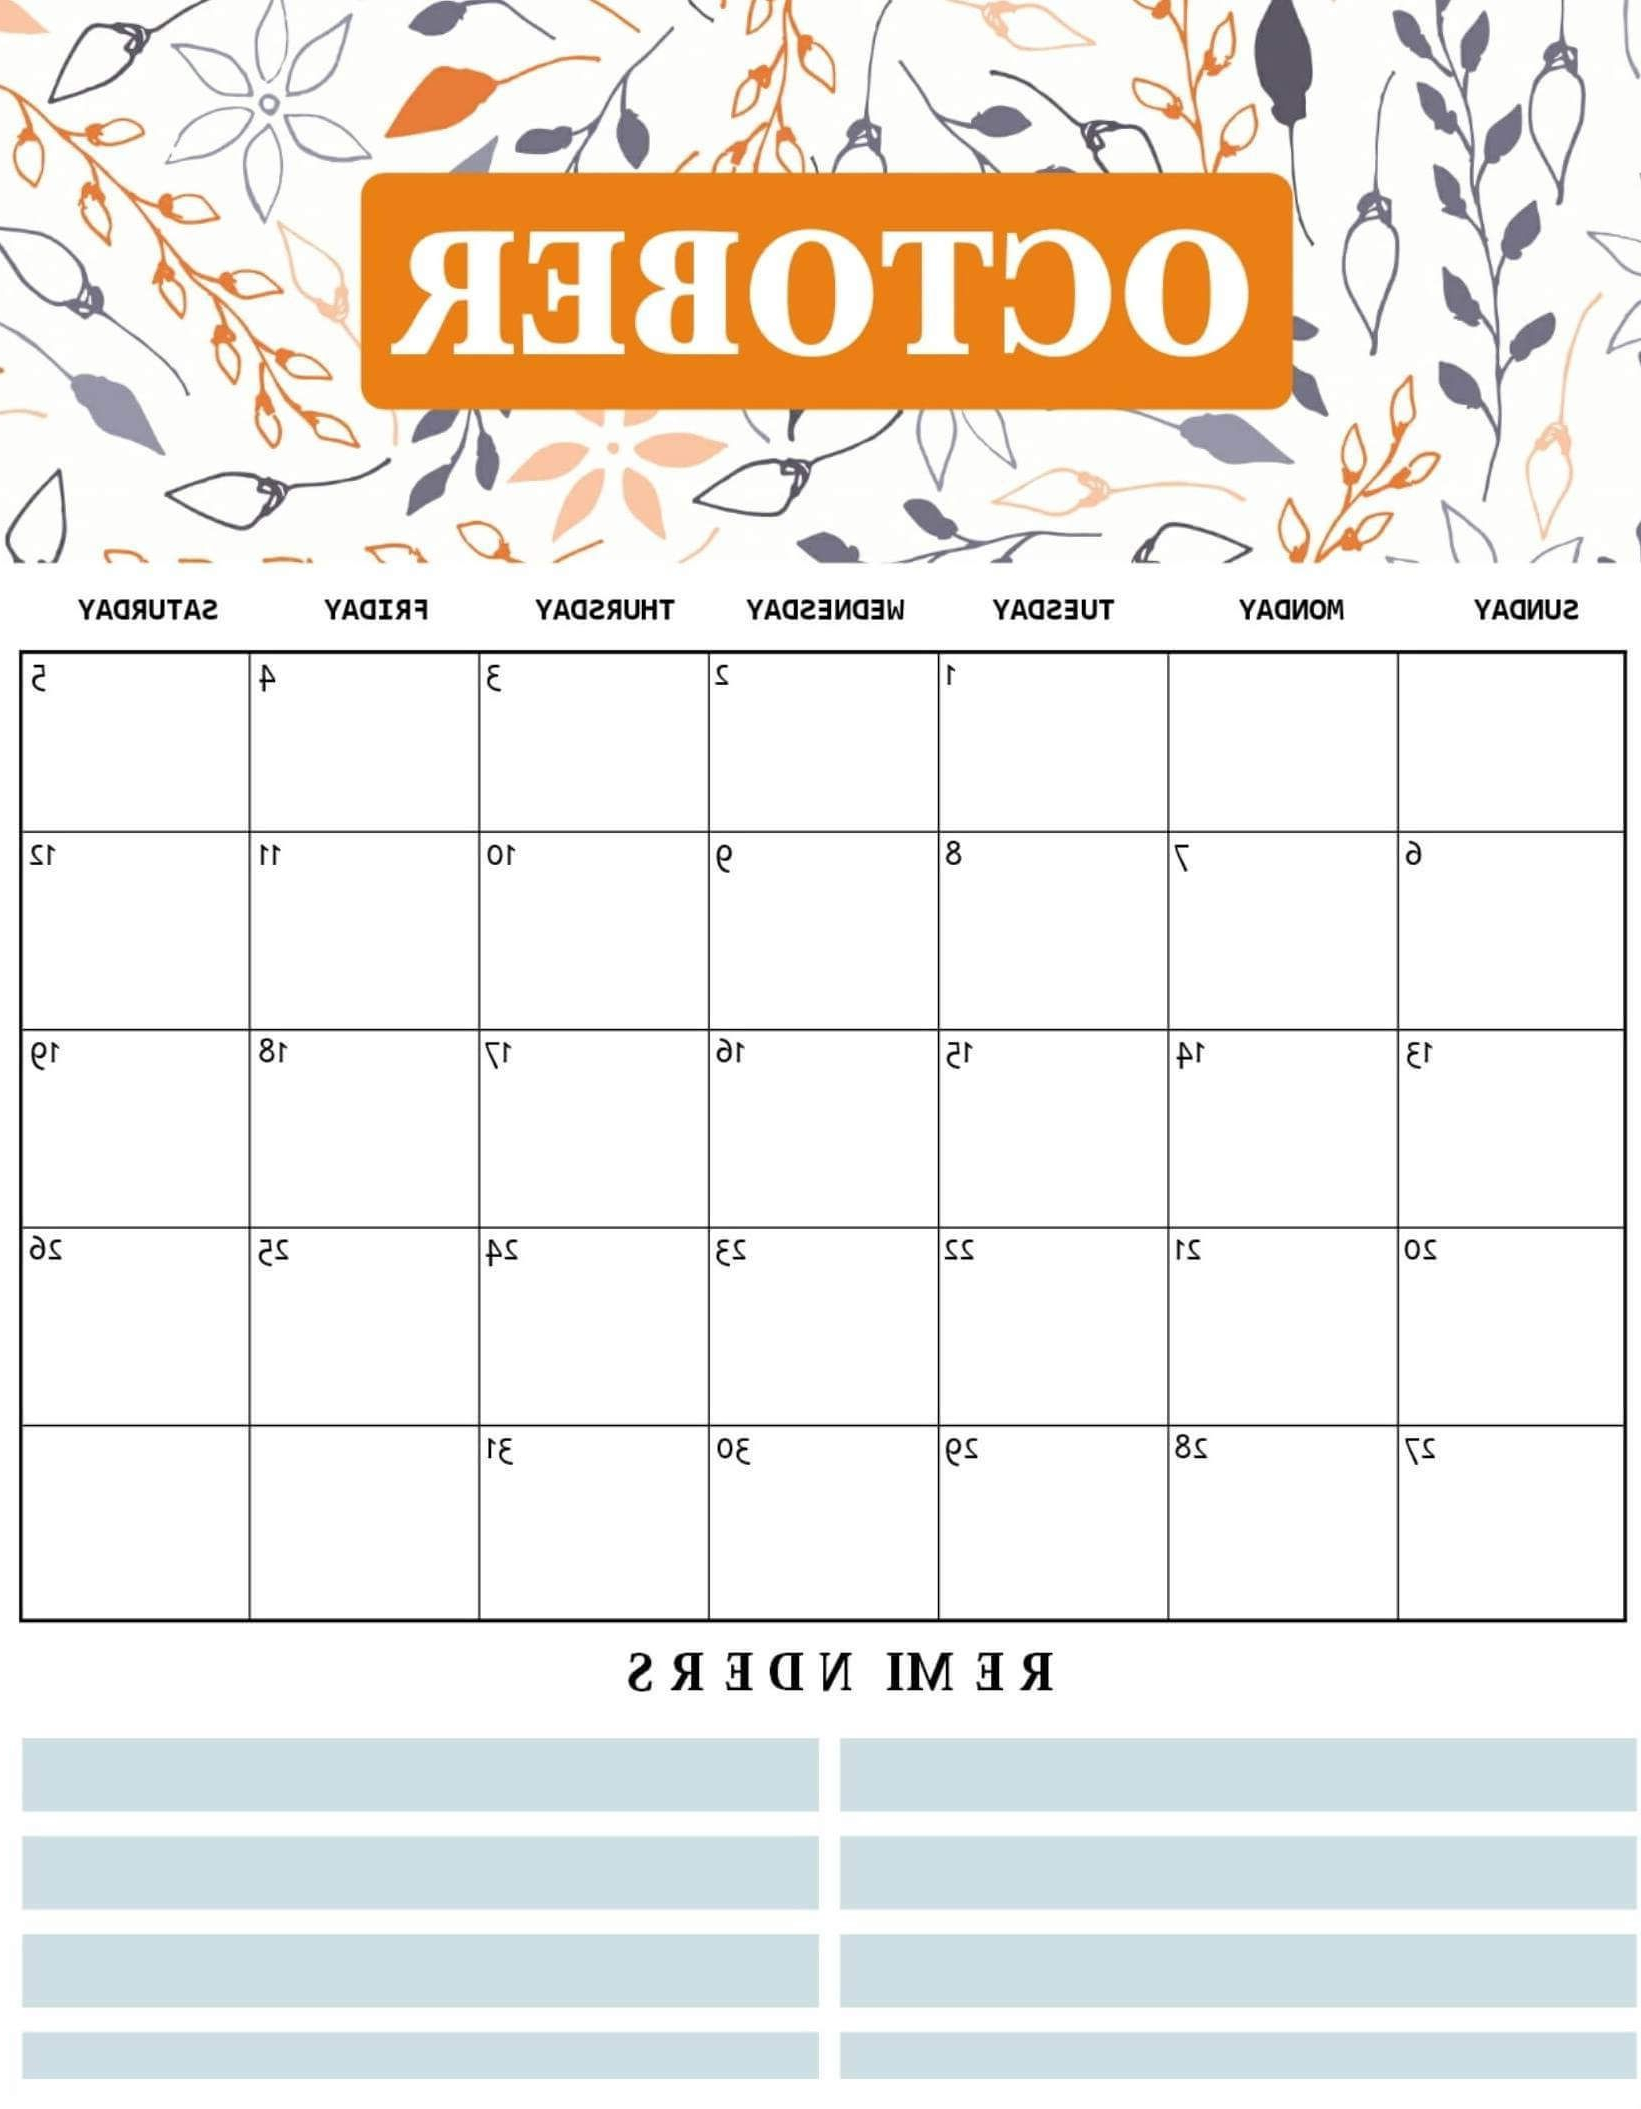 October Calendar Printable Qwdq Cute October 2019 Calendar Template